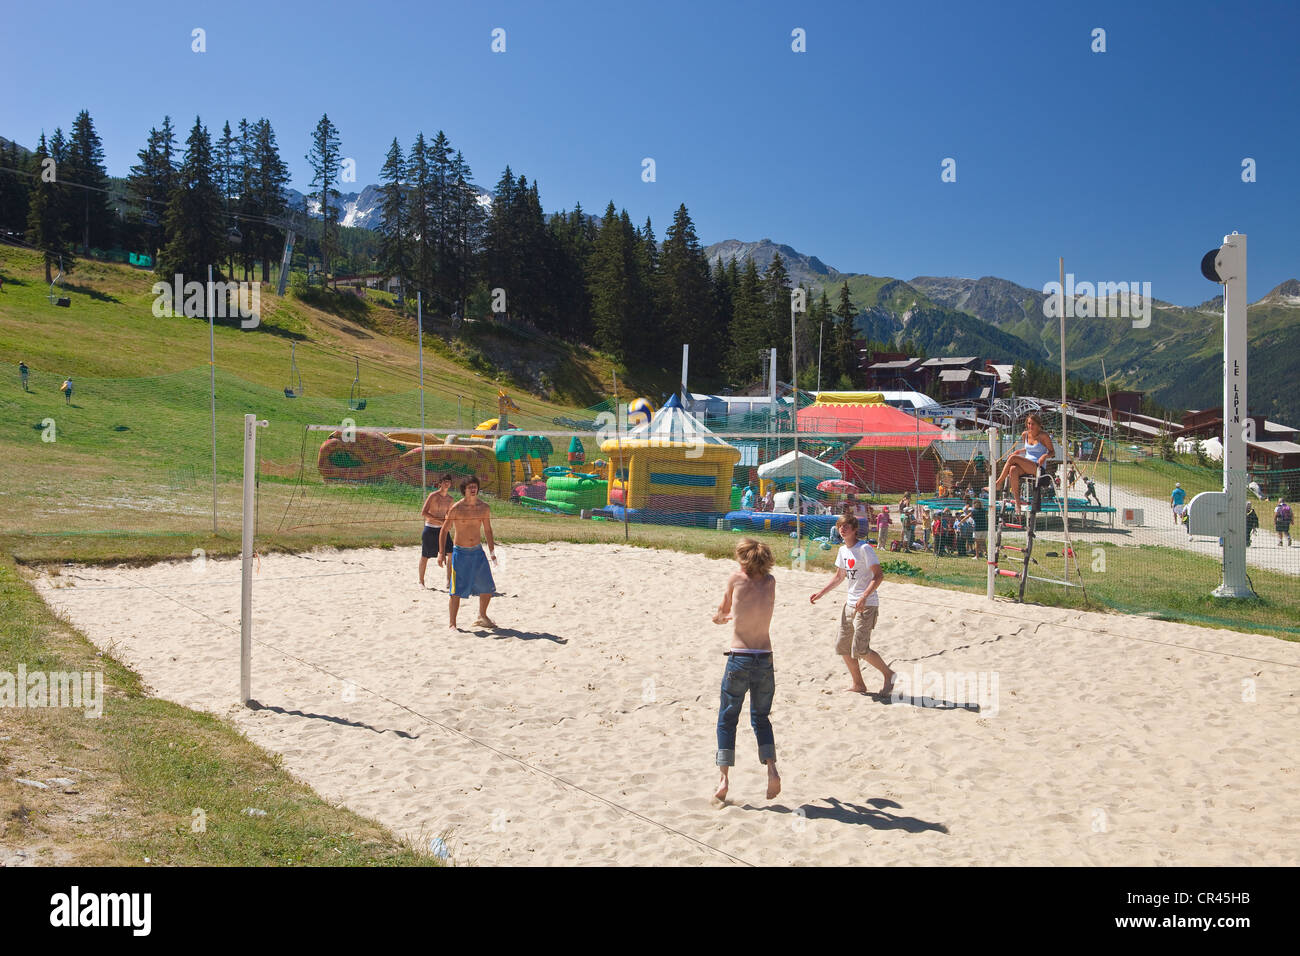 France, Savoie, Les Arcs 1800, Volleyball match - Stock Image